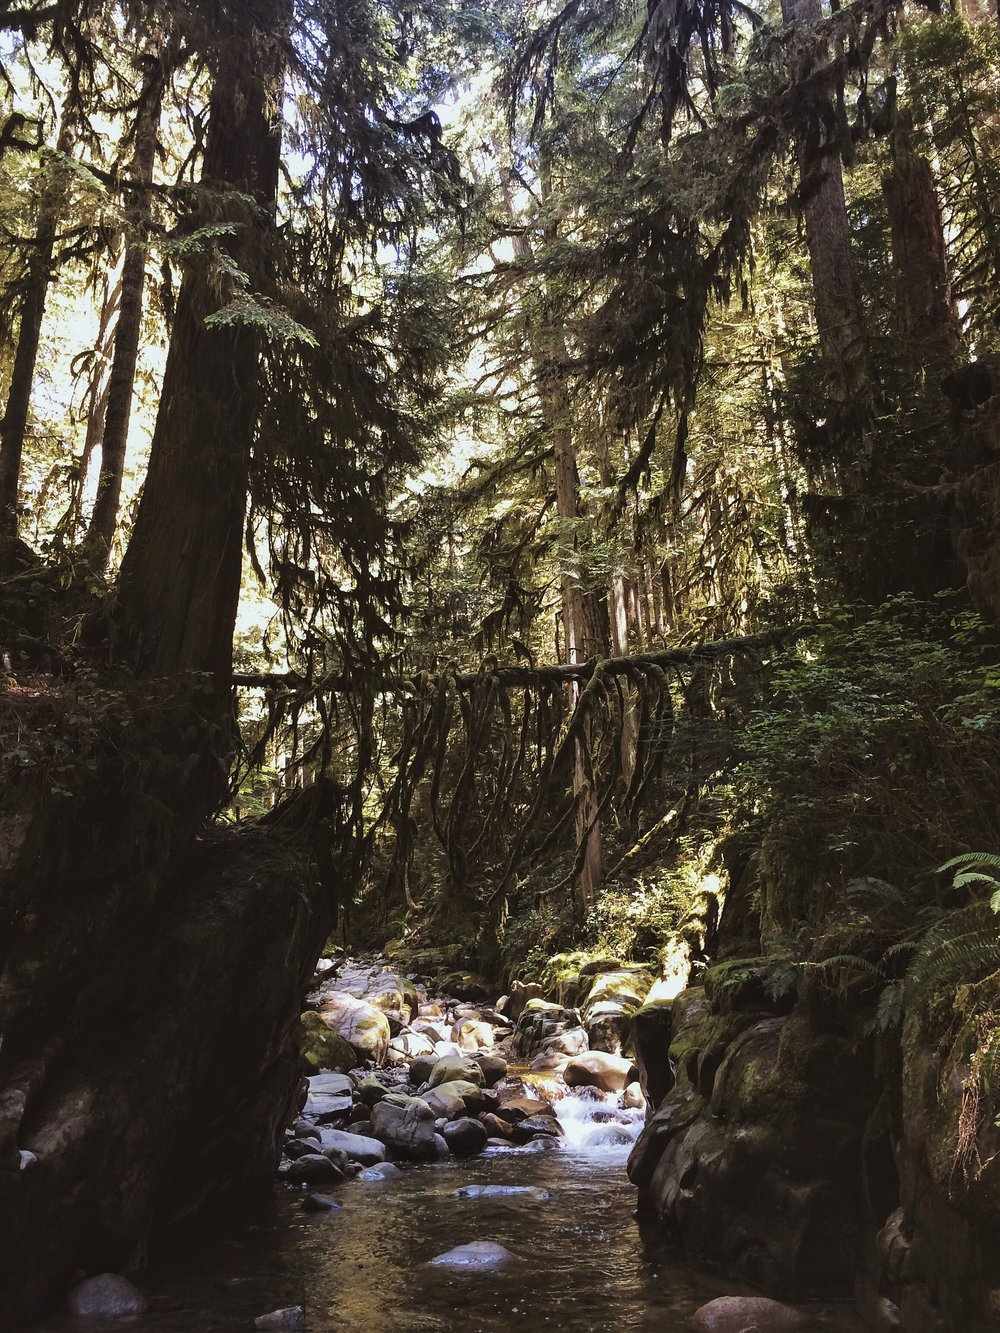 Hiking in Vancouver, British Columbia